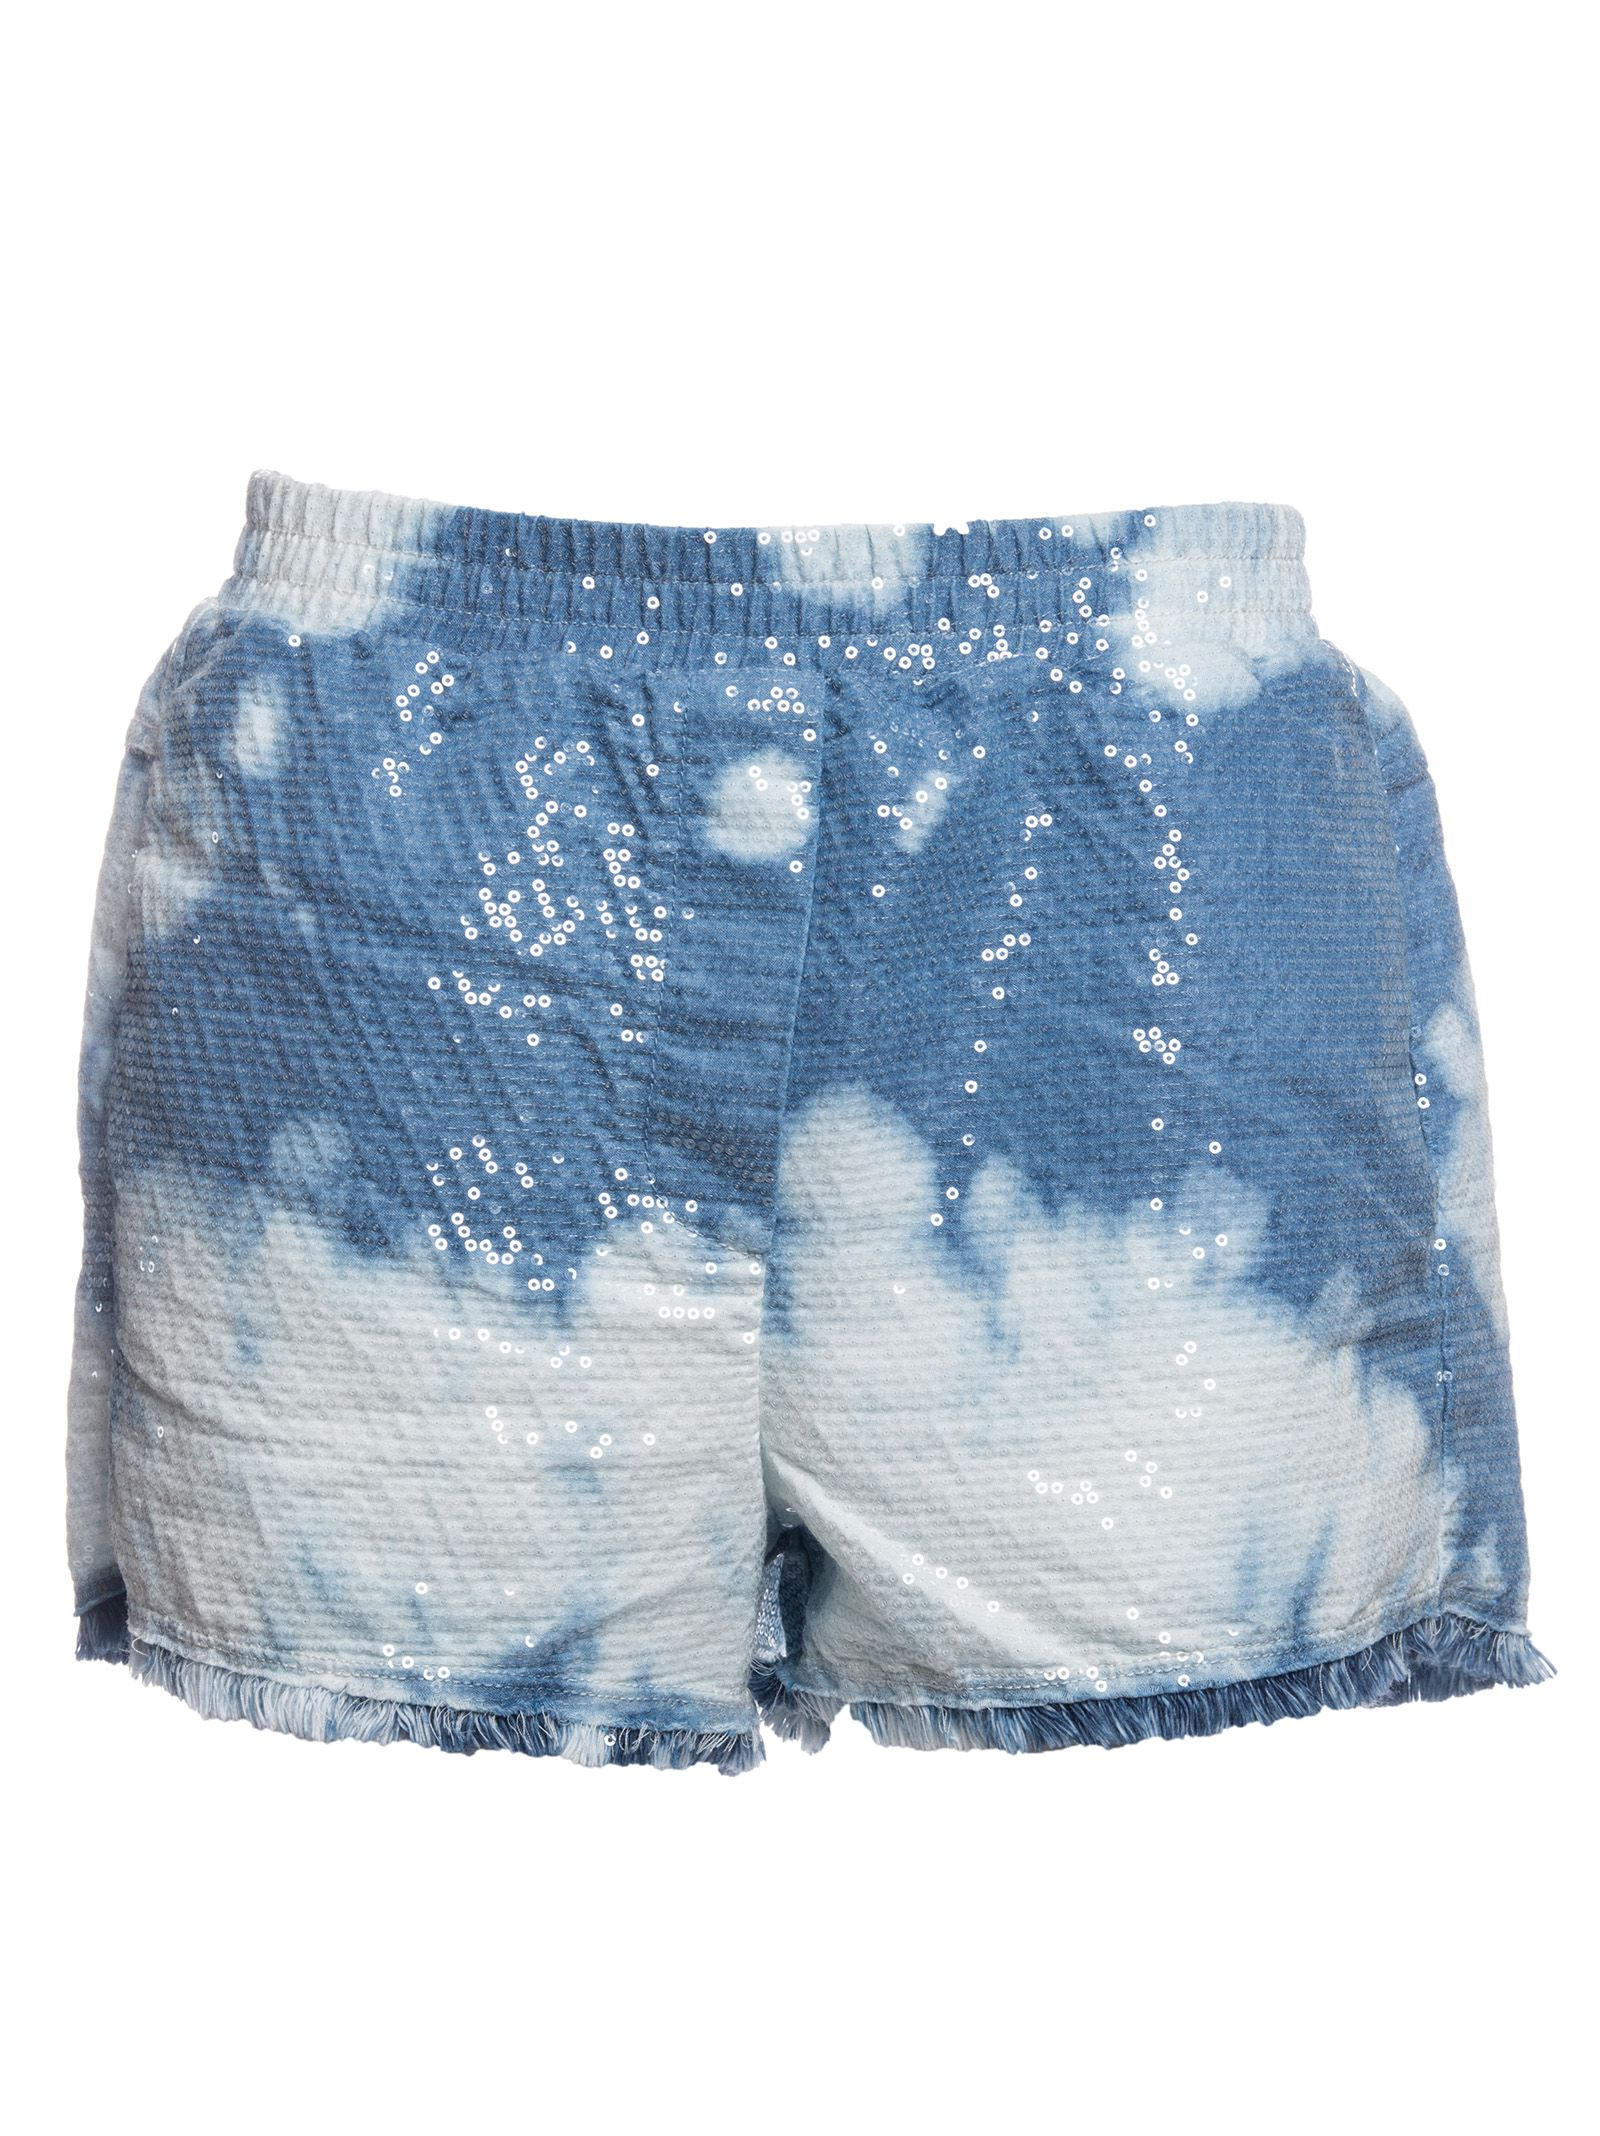 8pm 8pm sequin tie dye shorts denim women 39 s shorts for Nike tie dye shirt and shorts